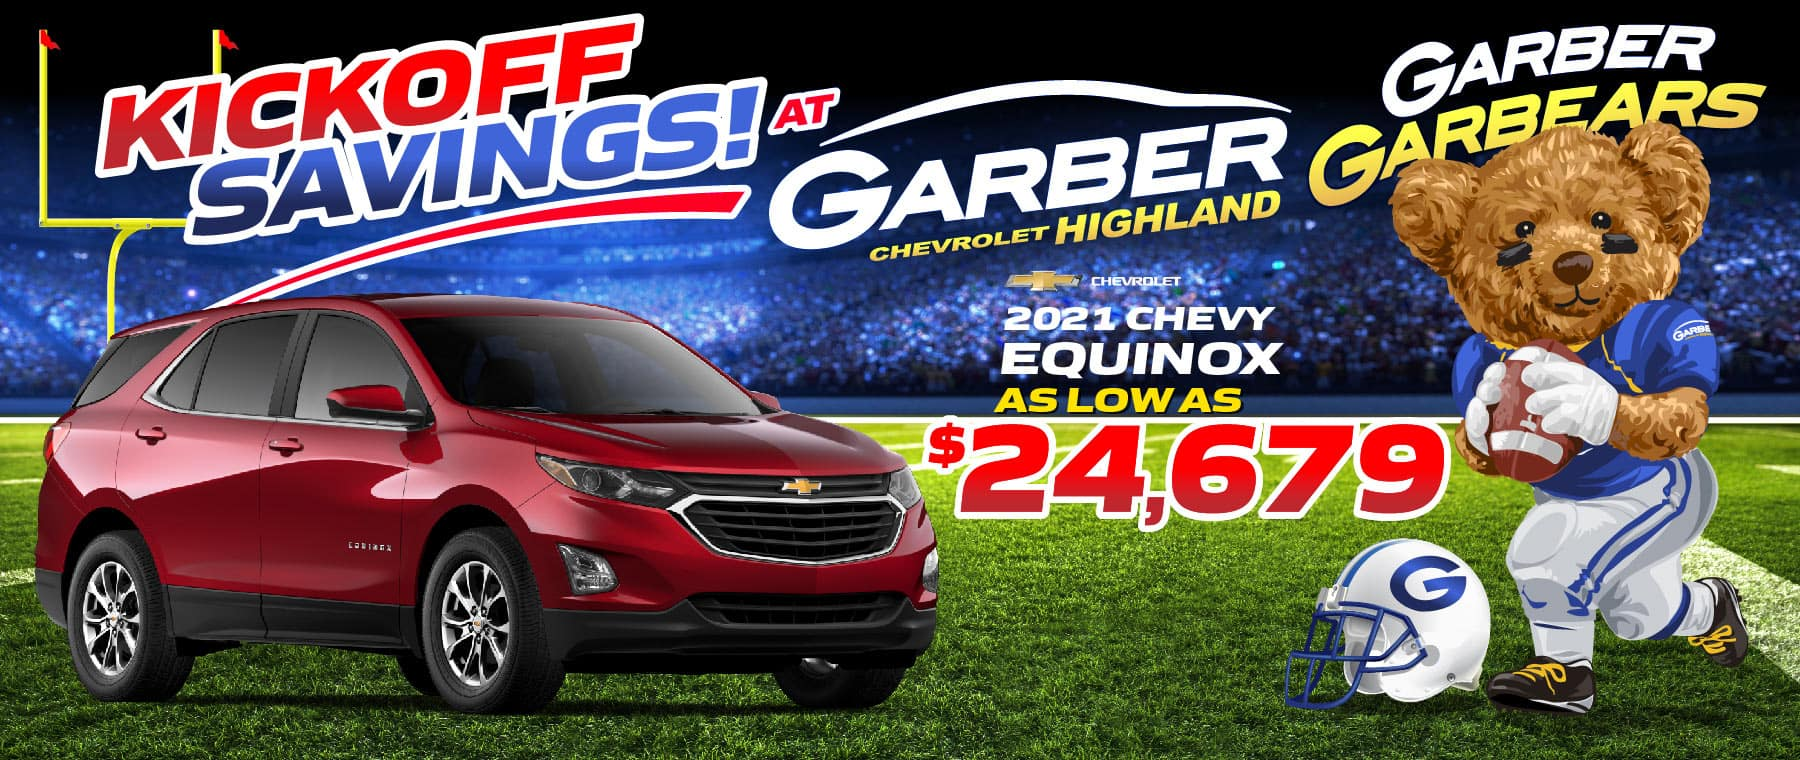 2021 Chevy Equinox - as low as $24,679